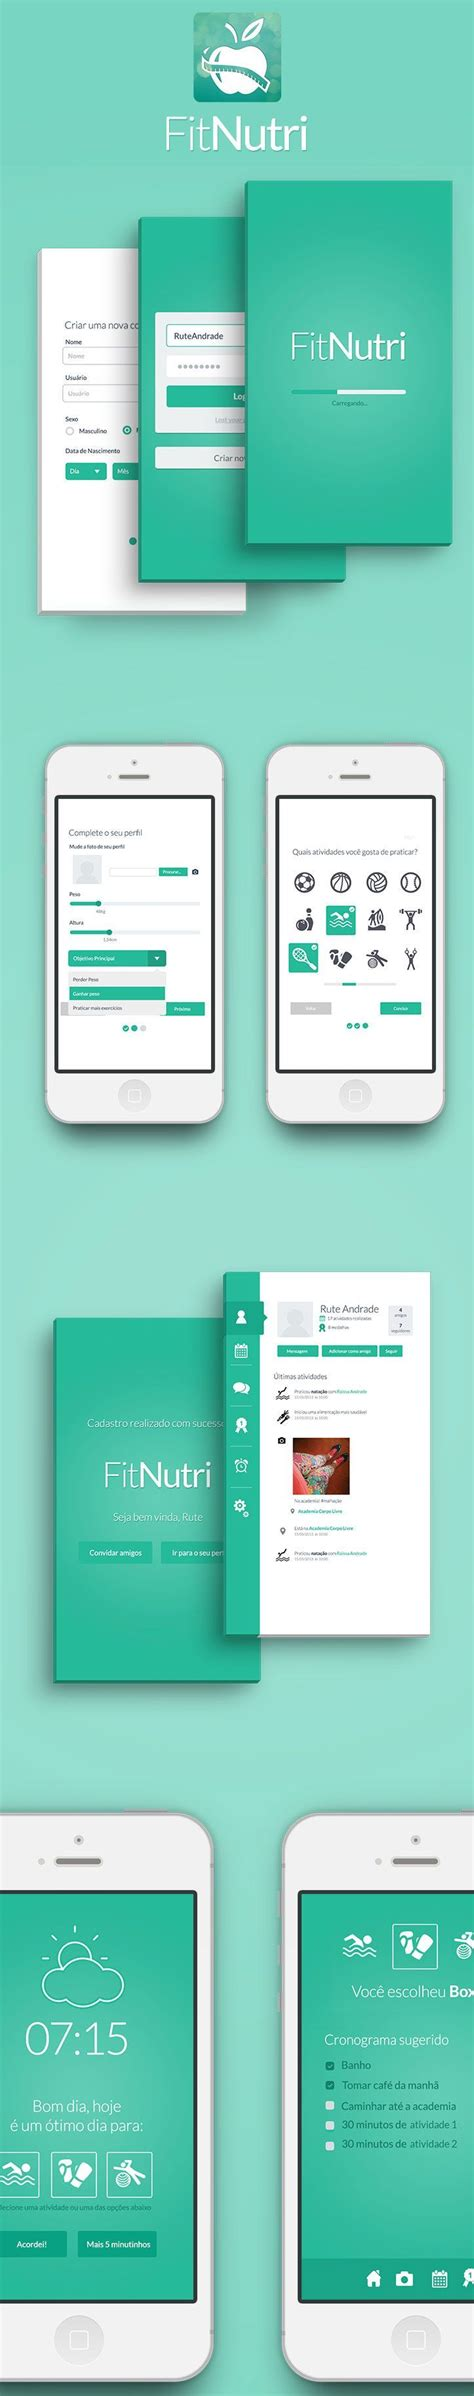 ios app layout tool highstermobiles com a site with all the information you